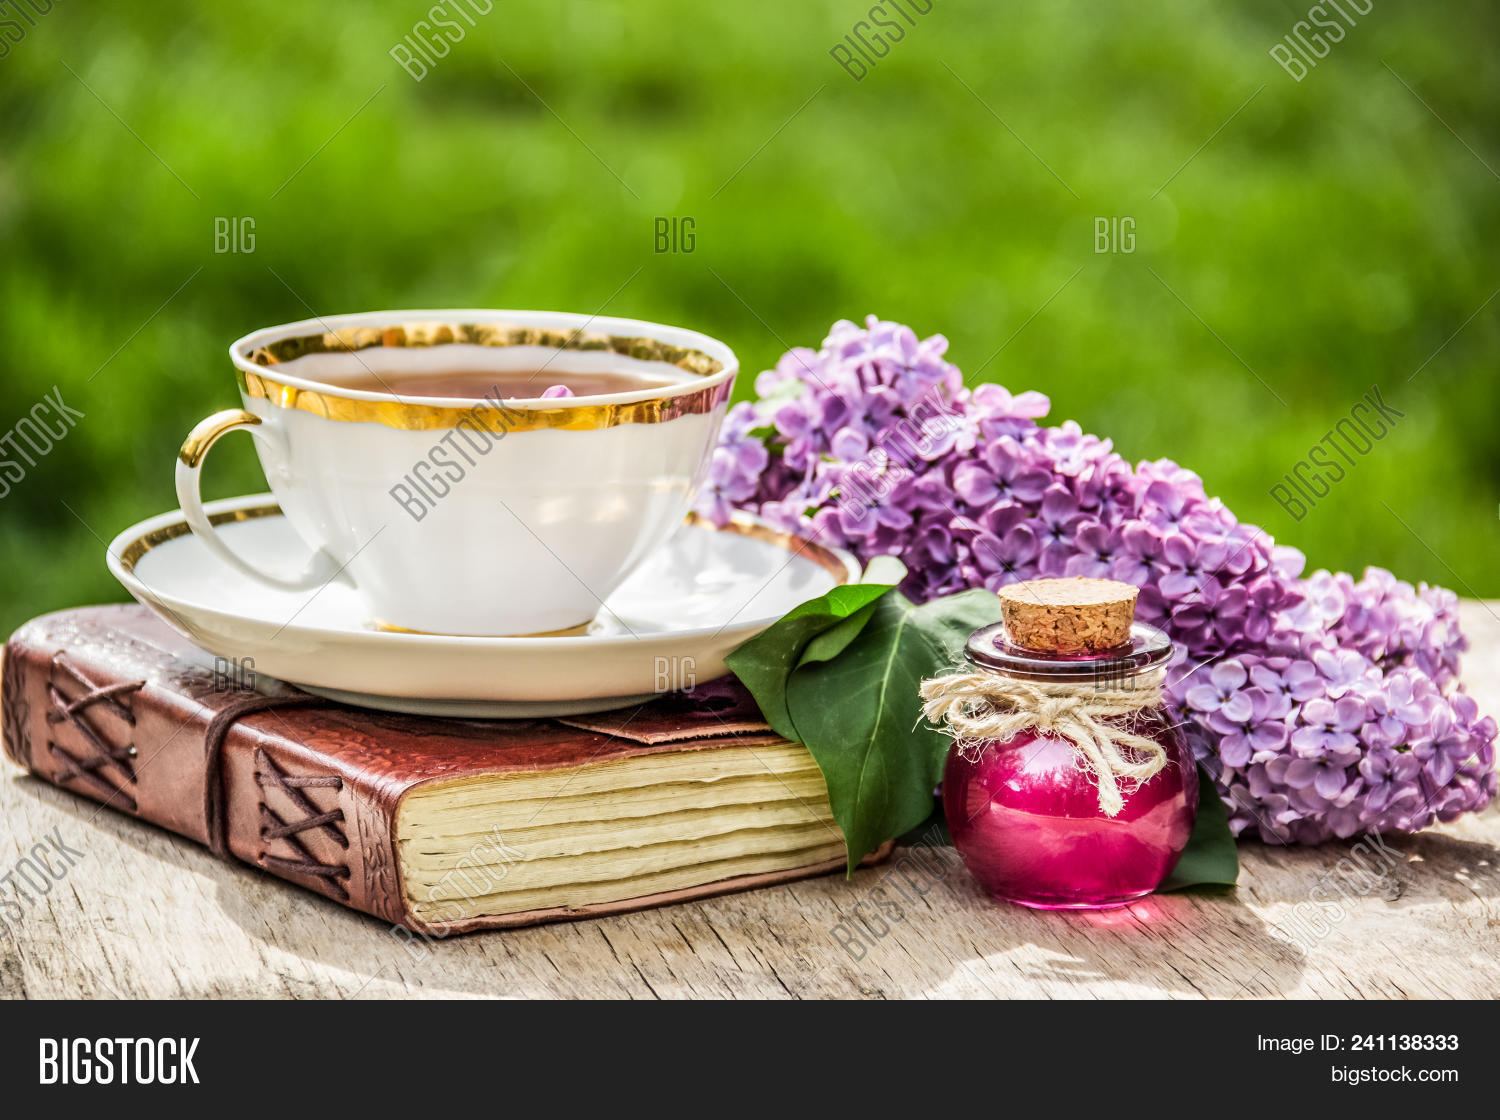 Cup Tea Drink Love Image Photo Free Trial Bigstock